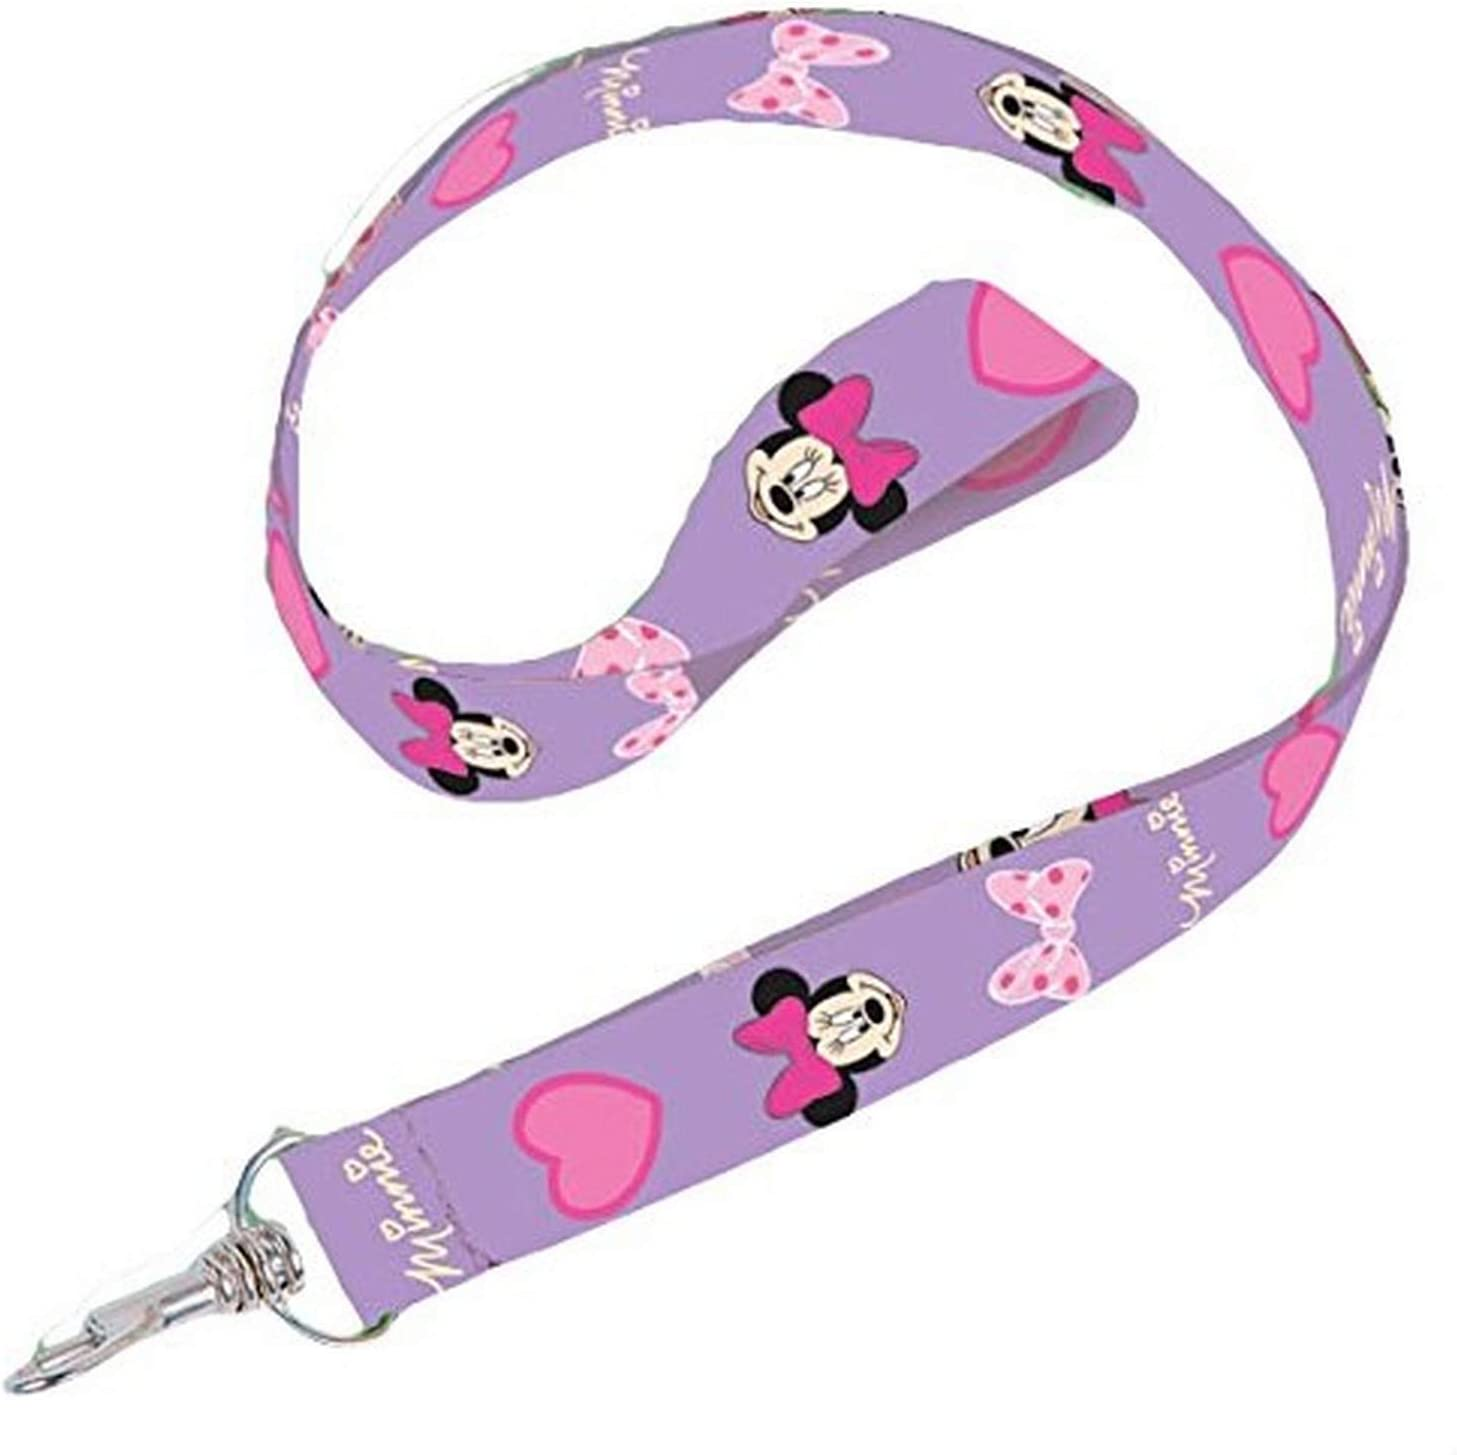 Multicolor Disney 85792 Minnie Mouse Lanyard with Zip Lock Card Holder